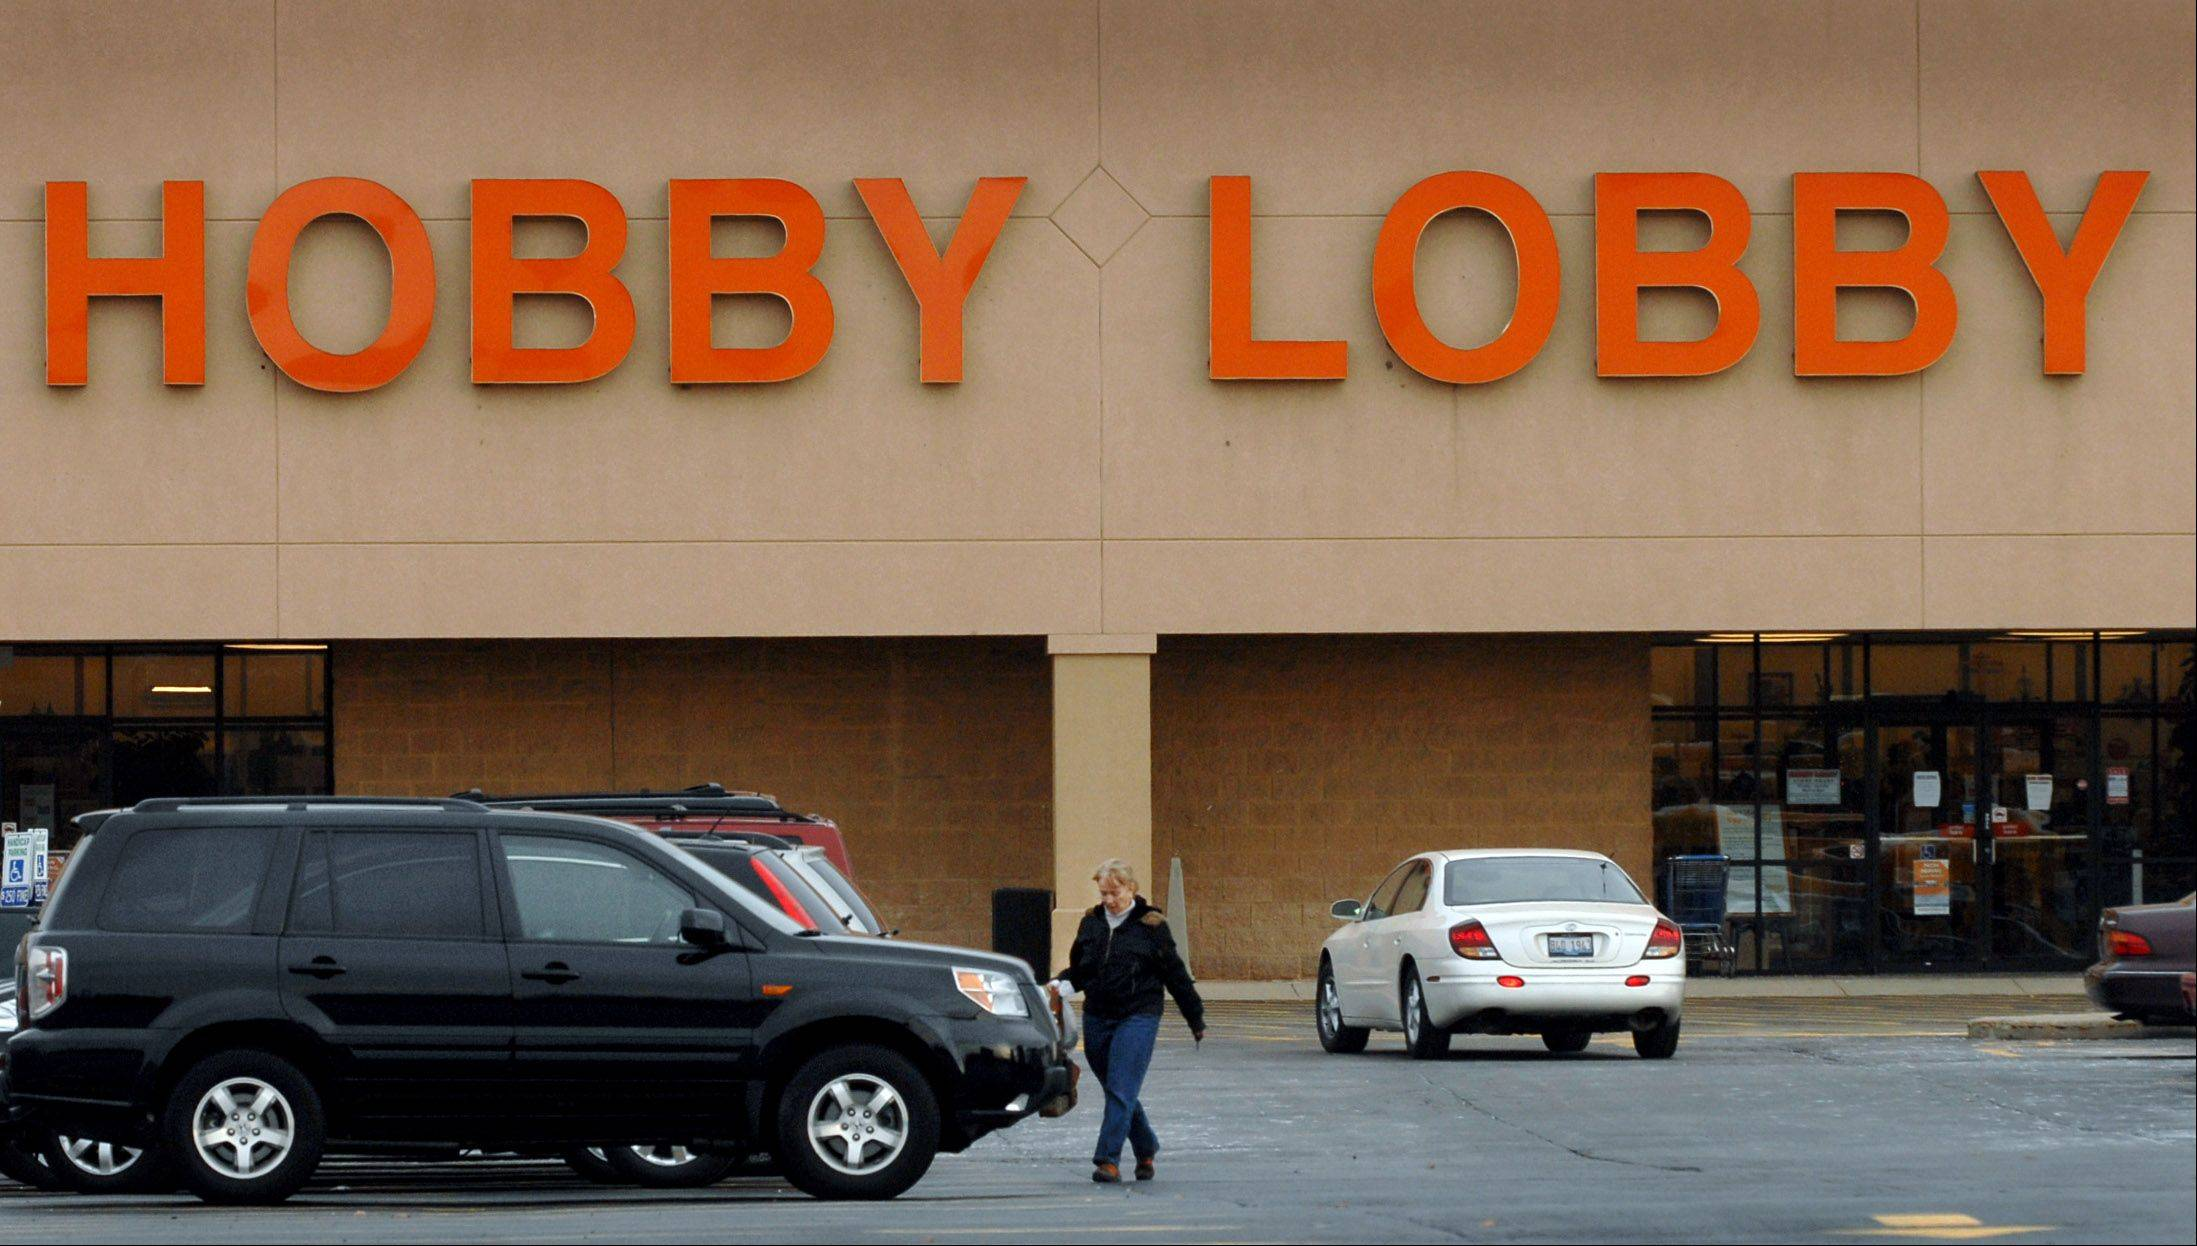 Contraception coverage by for-profit companies faces a prominent test in Denver. Hobby Lobby Stores Inc. is asking a federal appeals court for an exemption from part of the federal health care law.